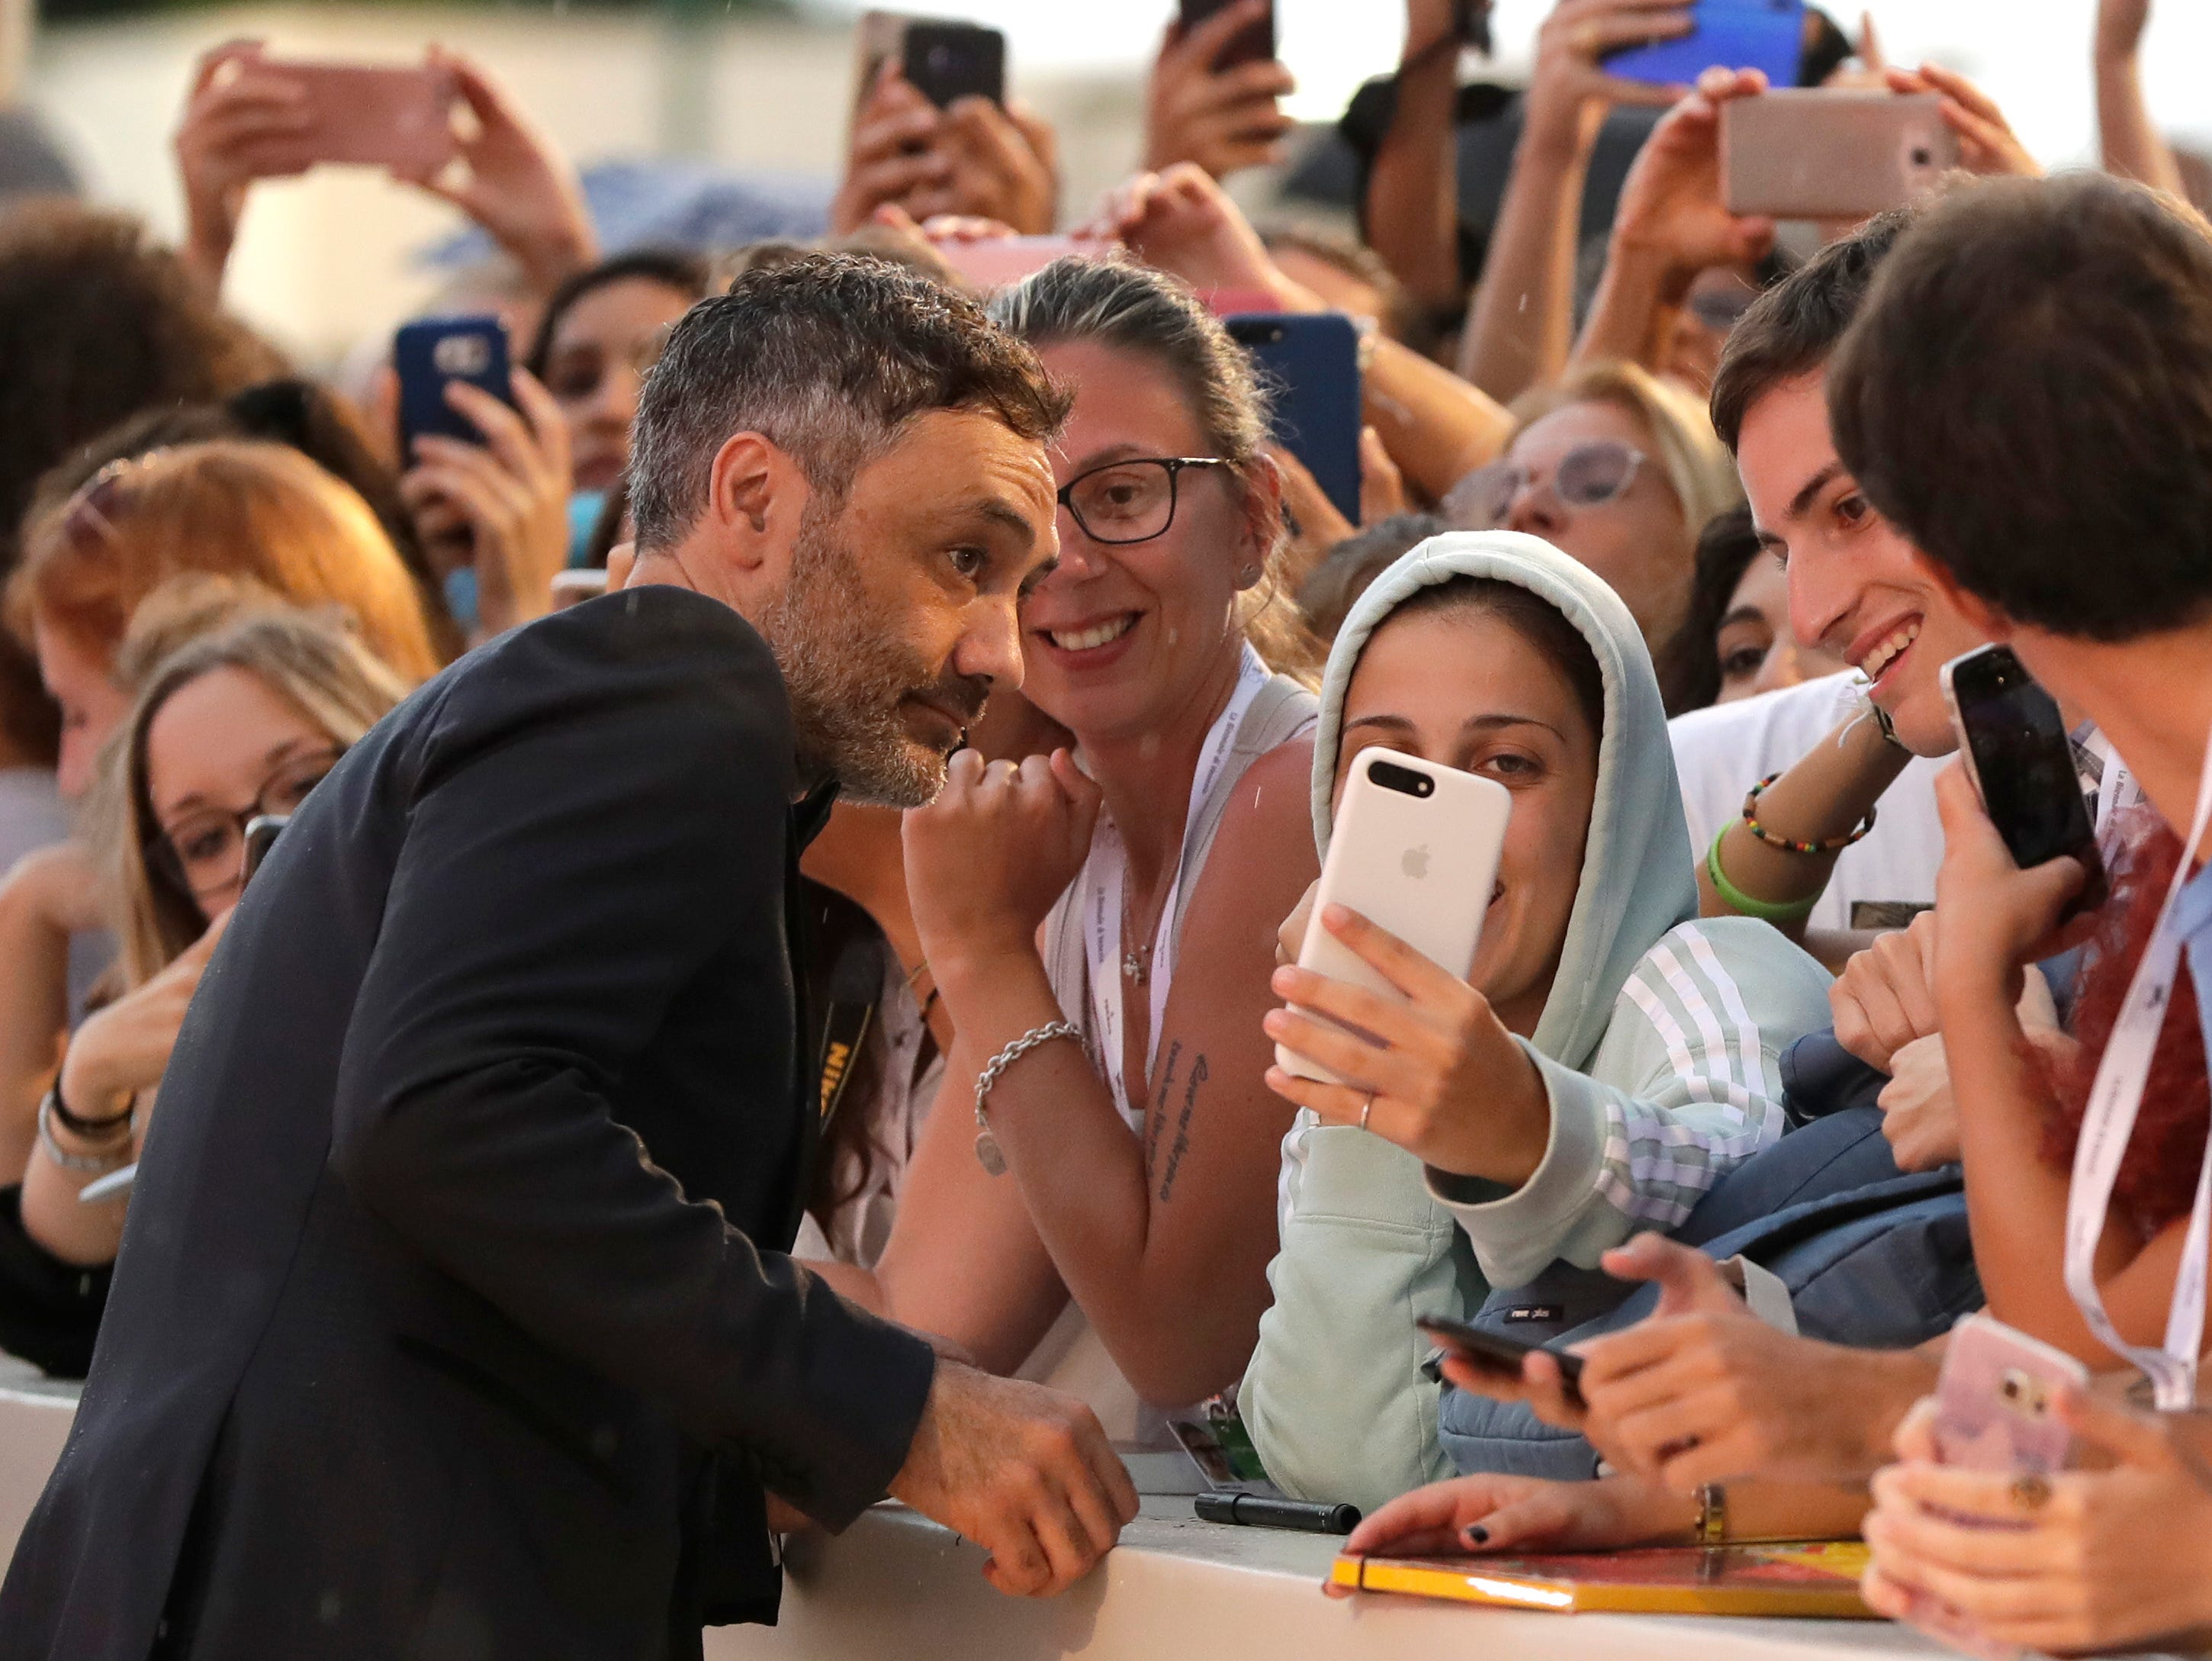 Jury member Taika Waititi poses with fans upon arrival at the premiere of the film 'At Eternity's Gate' at the 75th edition of the Venice Film Festival in Venice, Italy, Monday, Sept. 3, 2018. (AP Photo/Kirsty Wigglesworth) ORG XMIT: LKW139